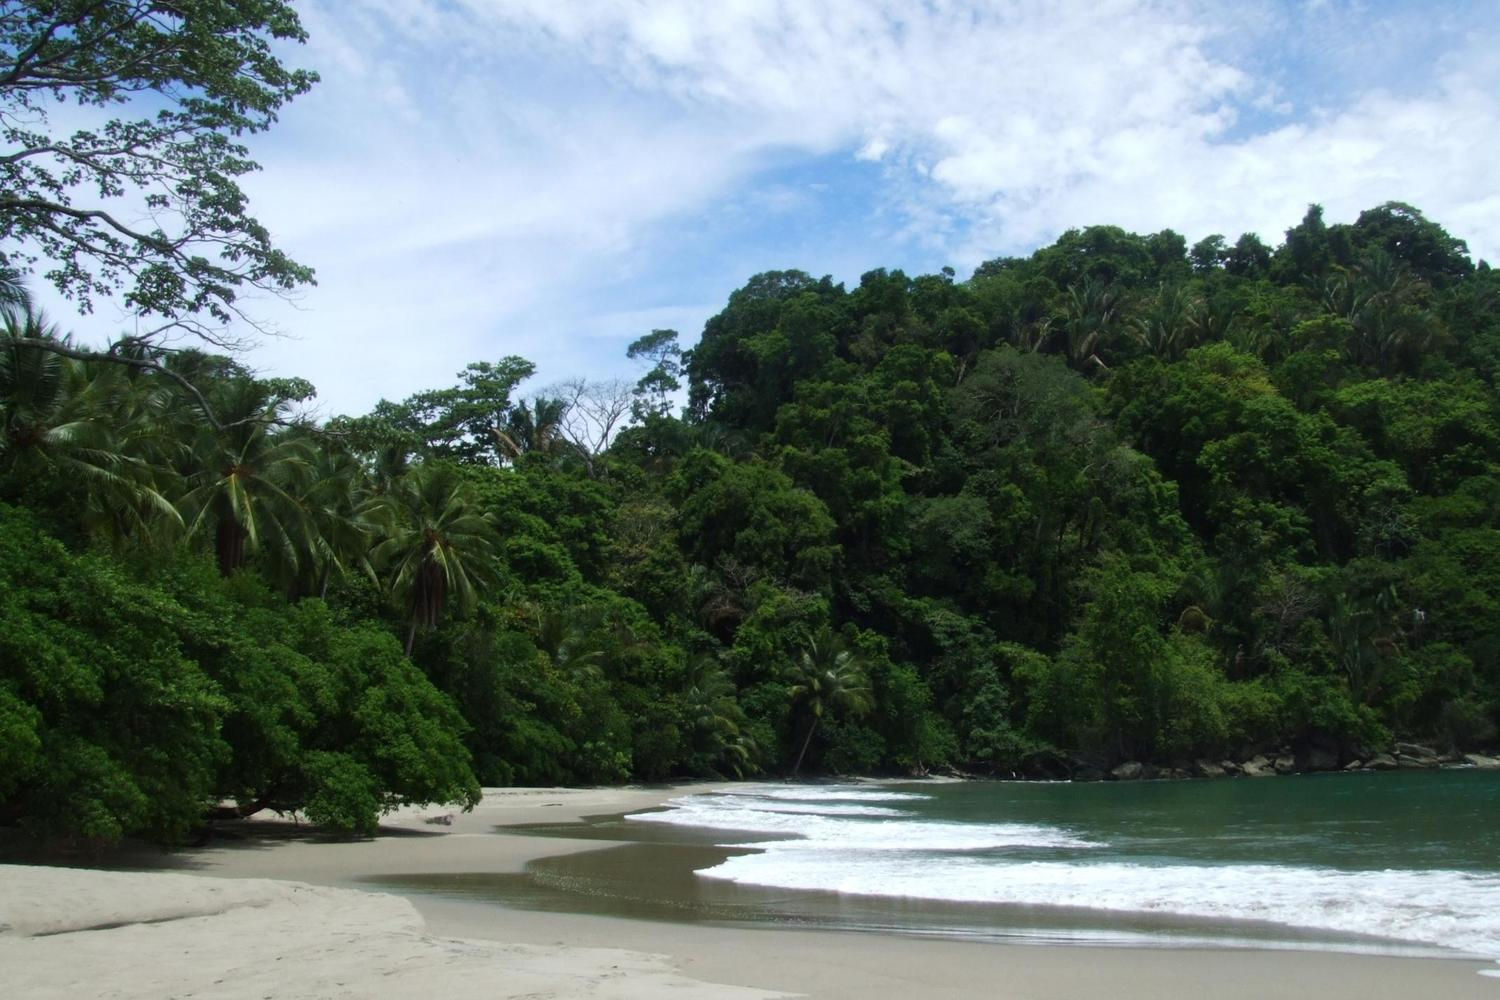 The sandy beaches of Manuel Antonio National Park